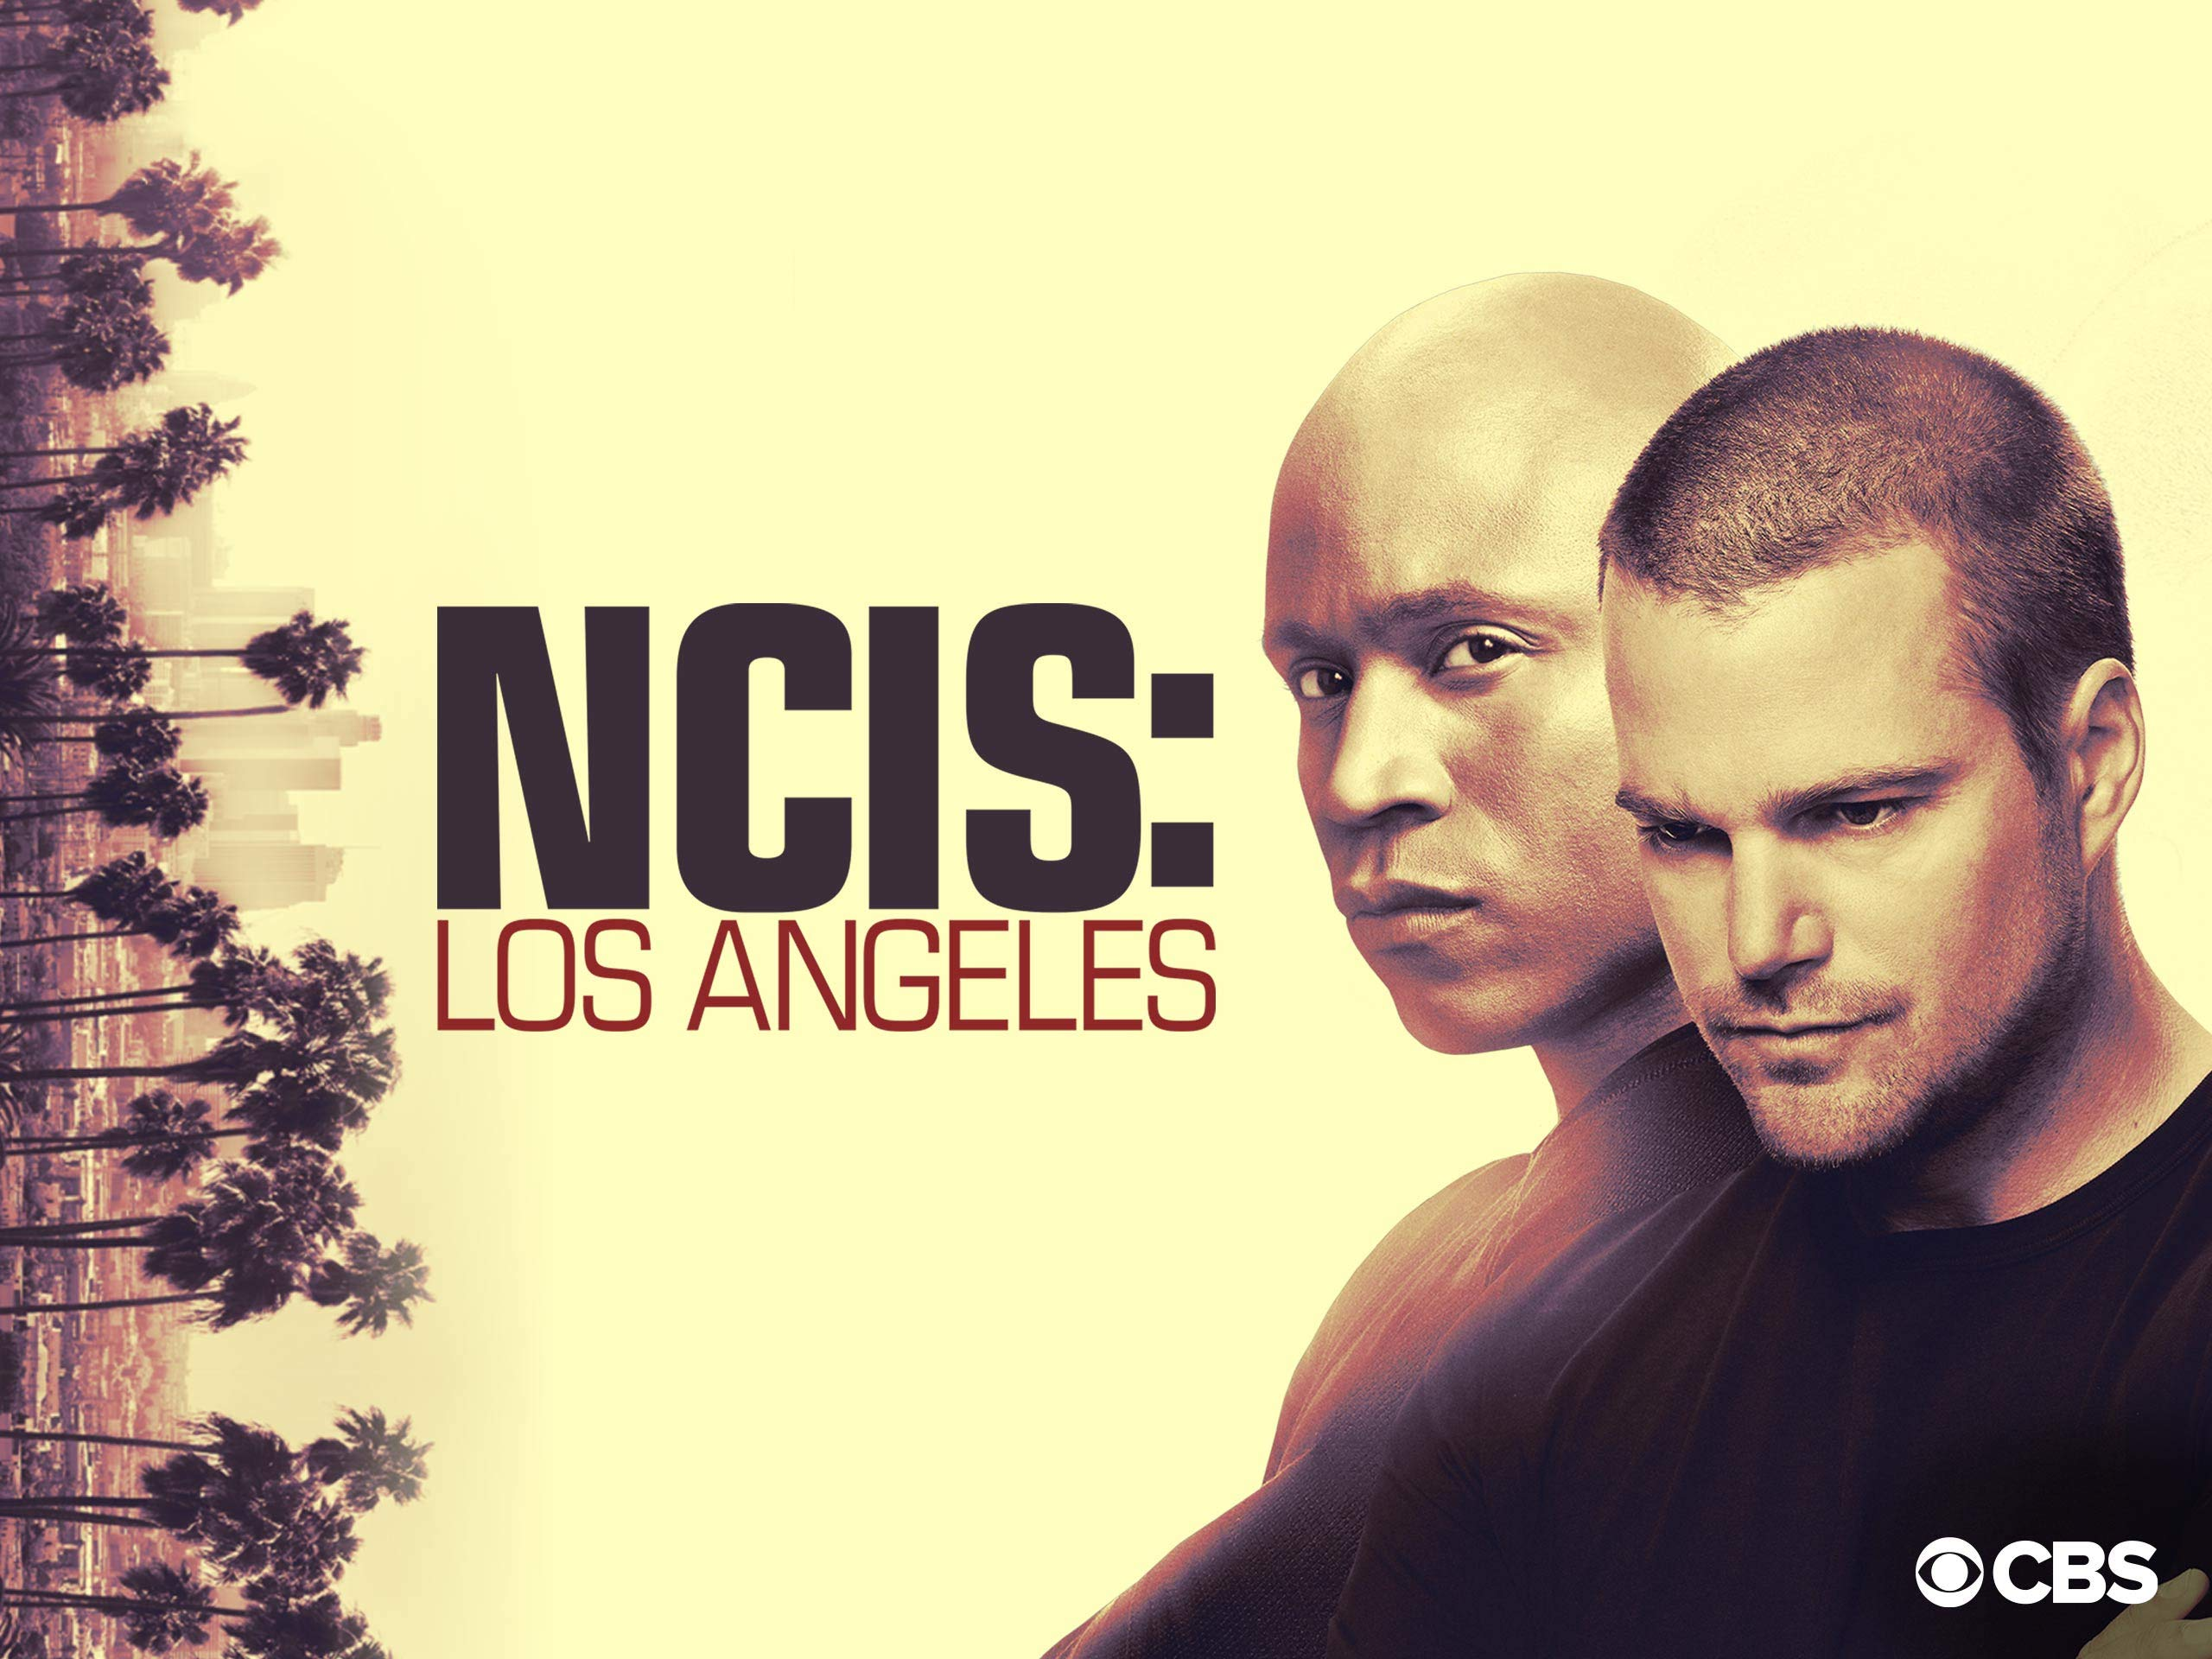 Check Out Ncis Los AngelesProducts On Amazon!